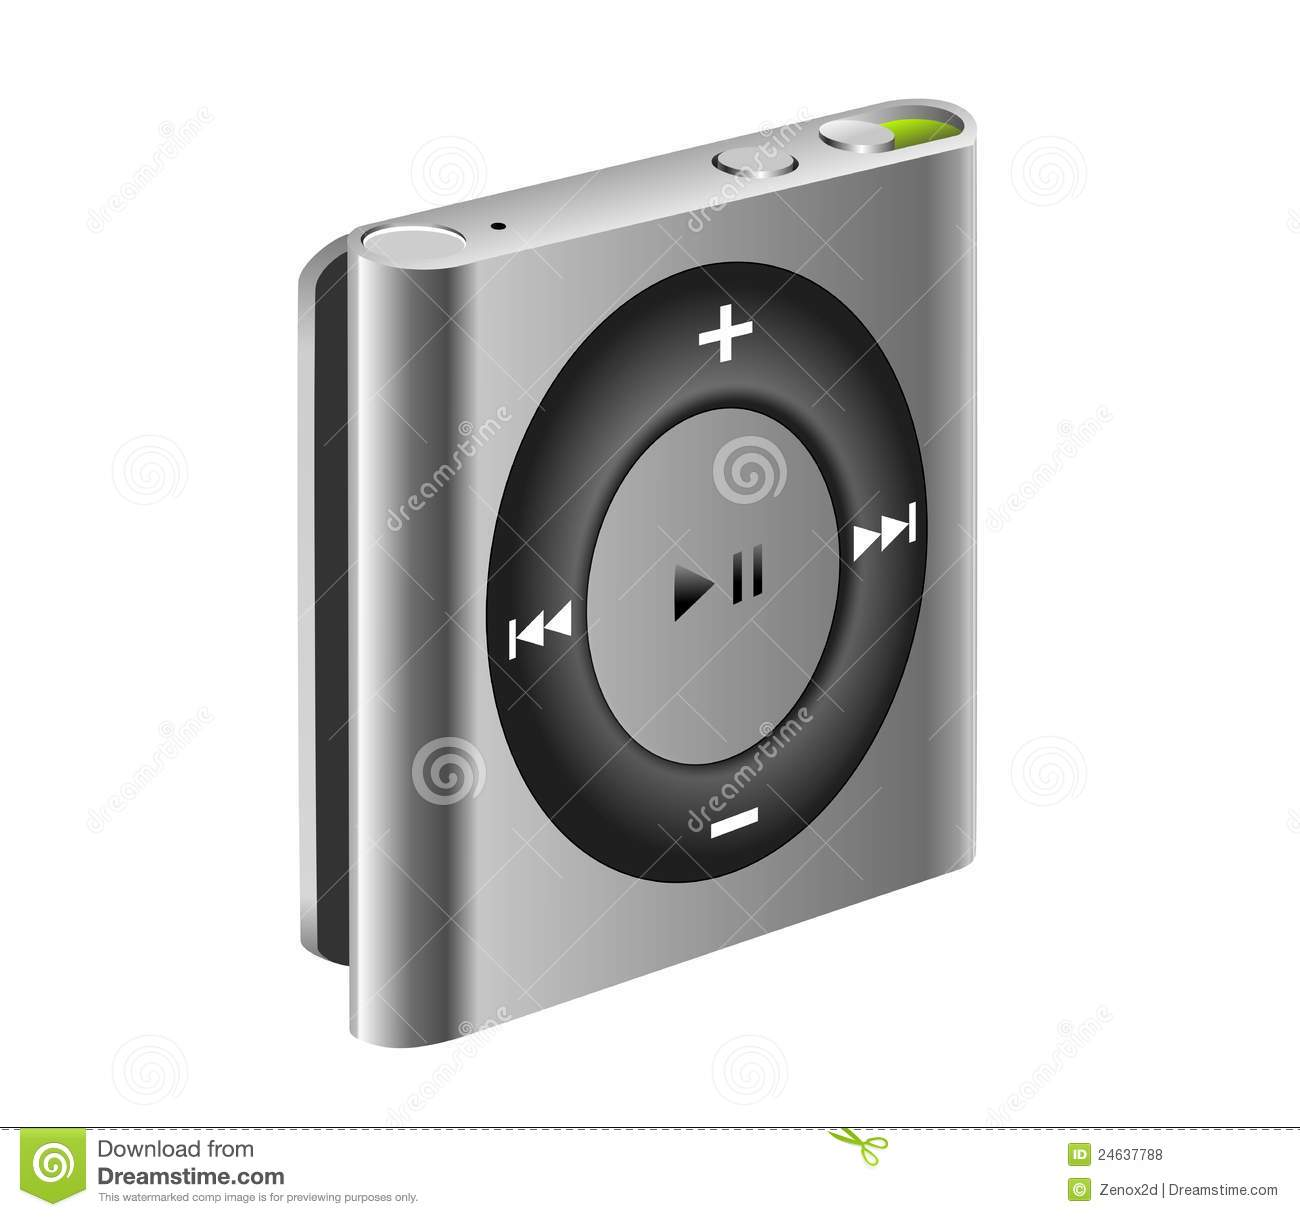 ipod shuffle mp3 player editorial stock photo image of. Black Bedroom Furniture Sets. Home Design Ideas